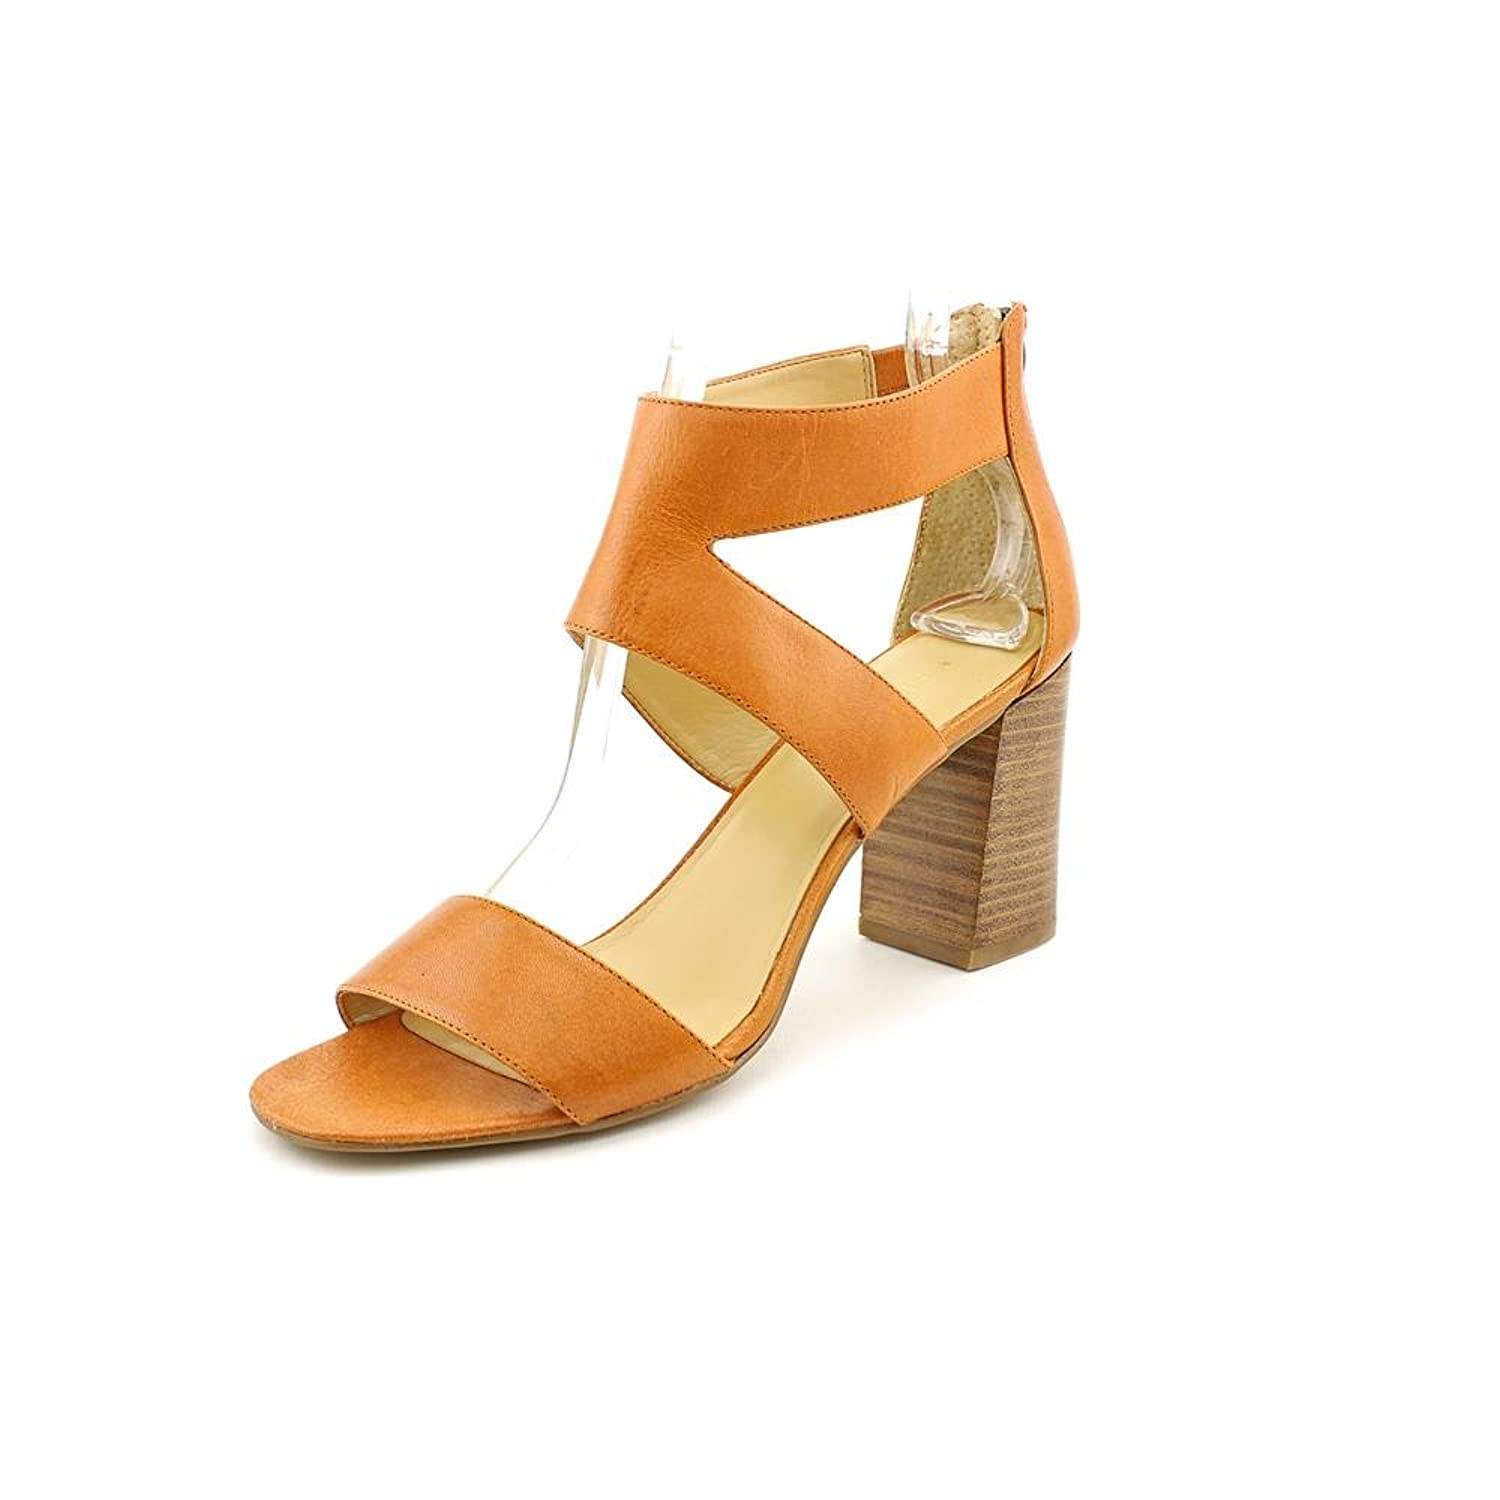 VERYNOW NATURAL LEATHER SANDAL HEELS WOMEN SIZE 8.5 M